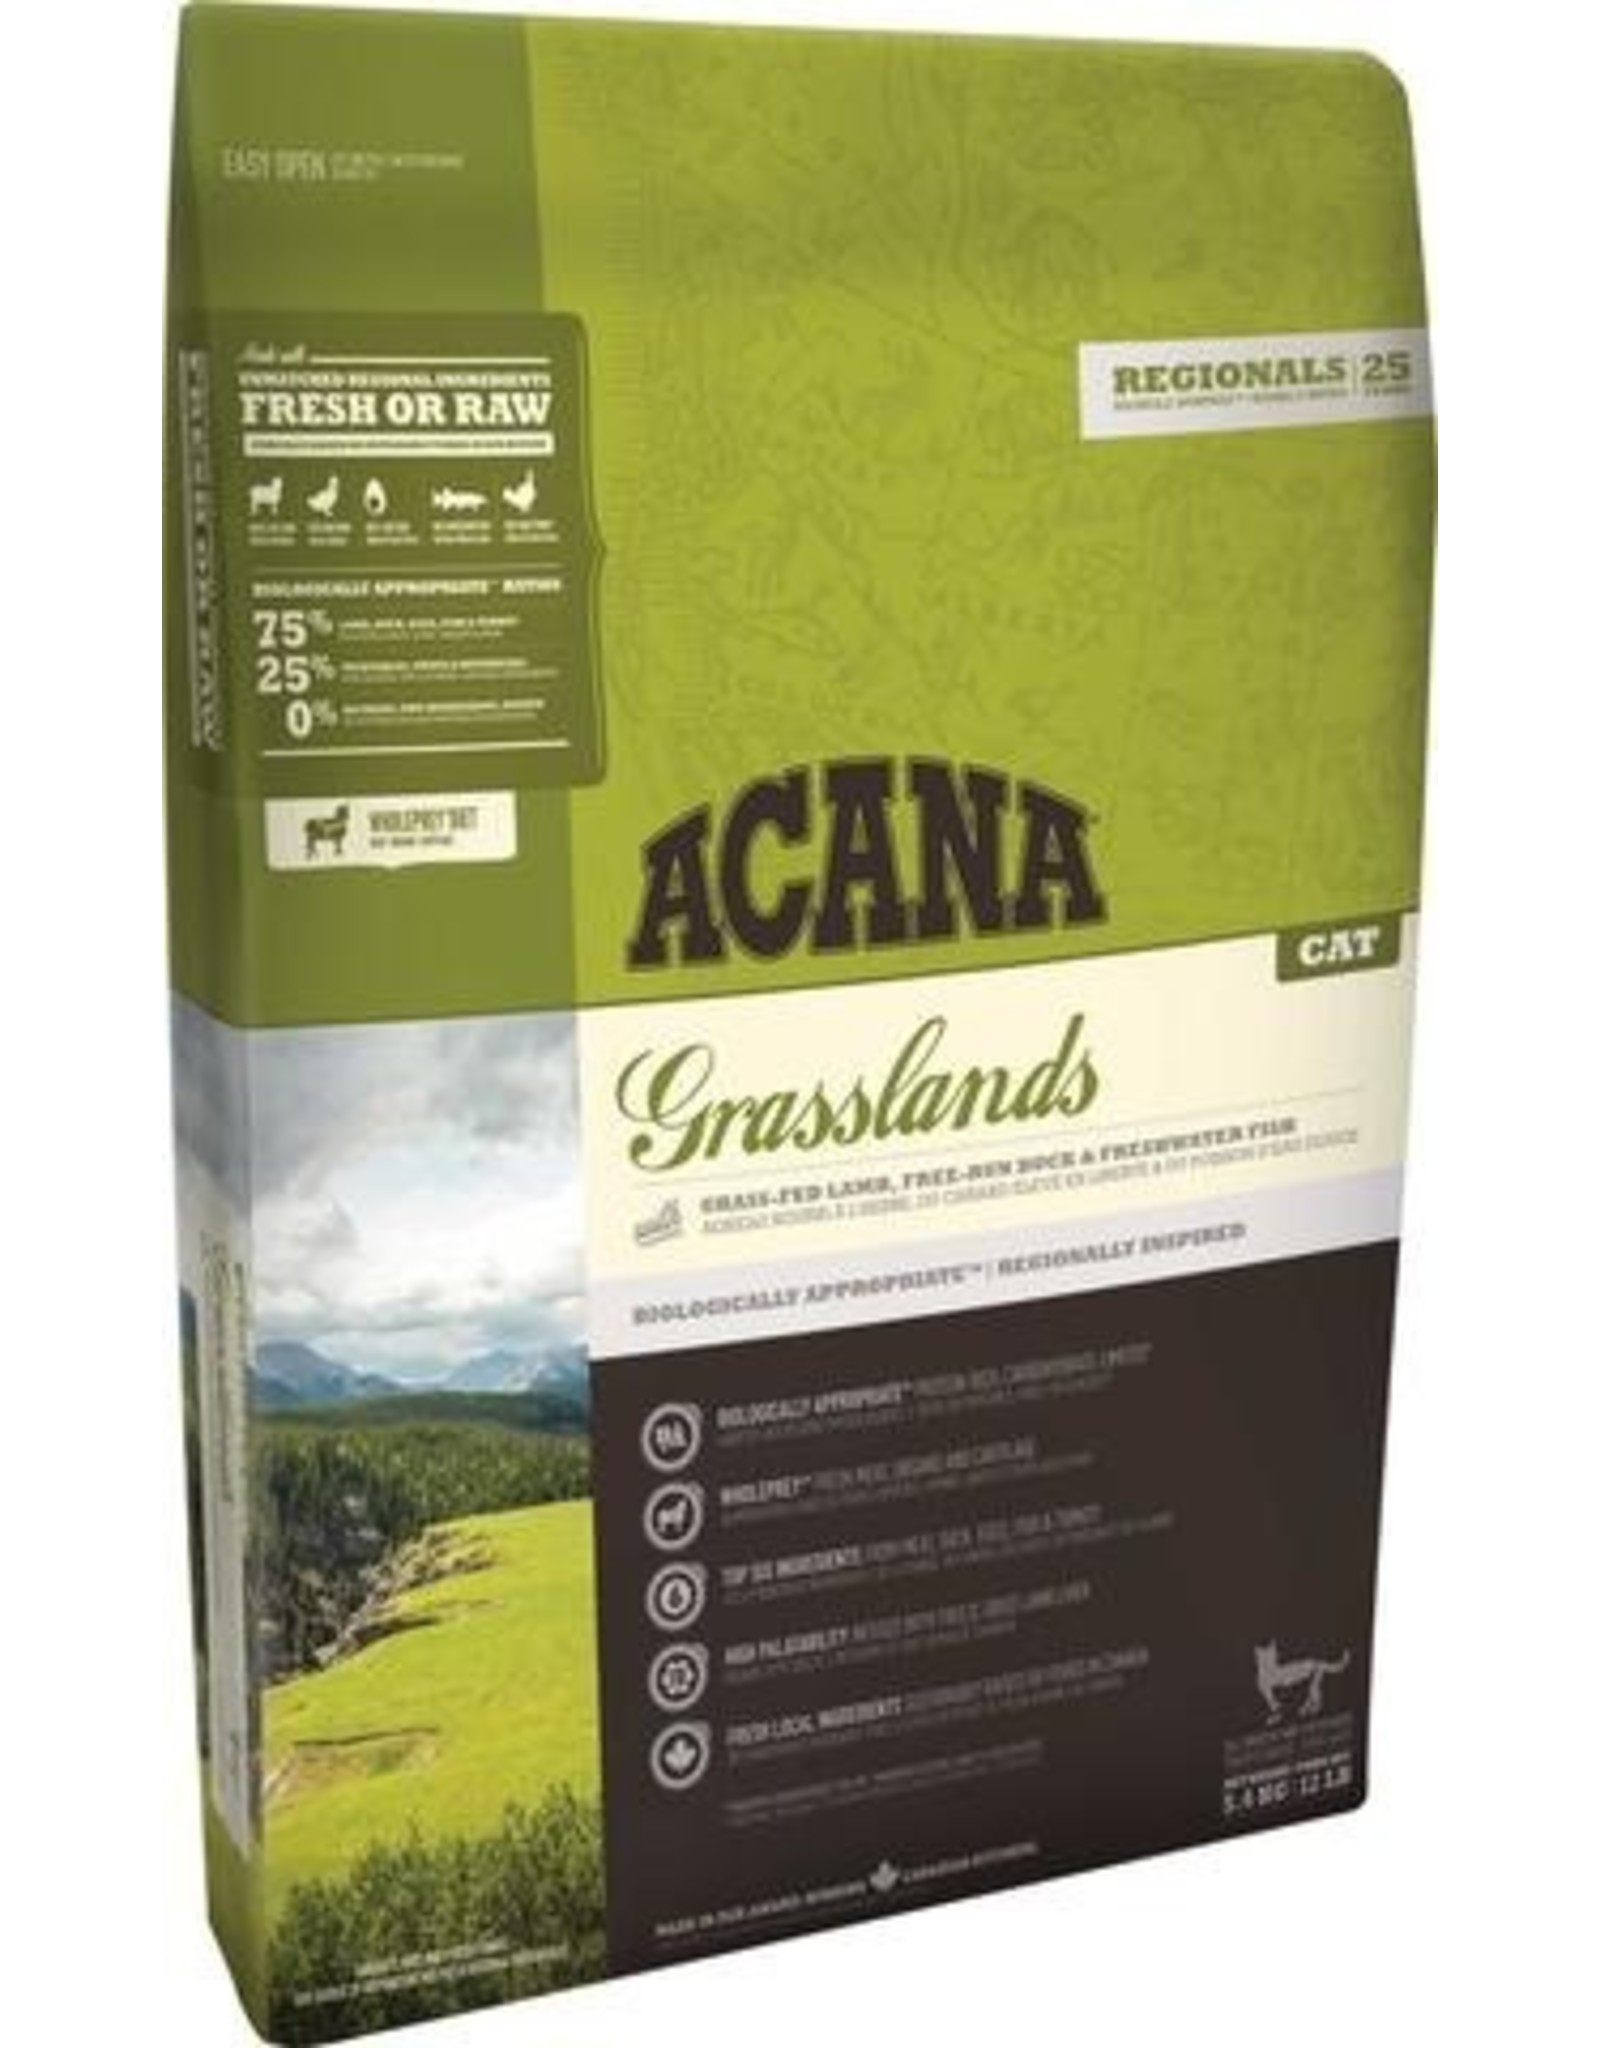 ACANA Acana CAT Regionals - Grasslands 4.5kg